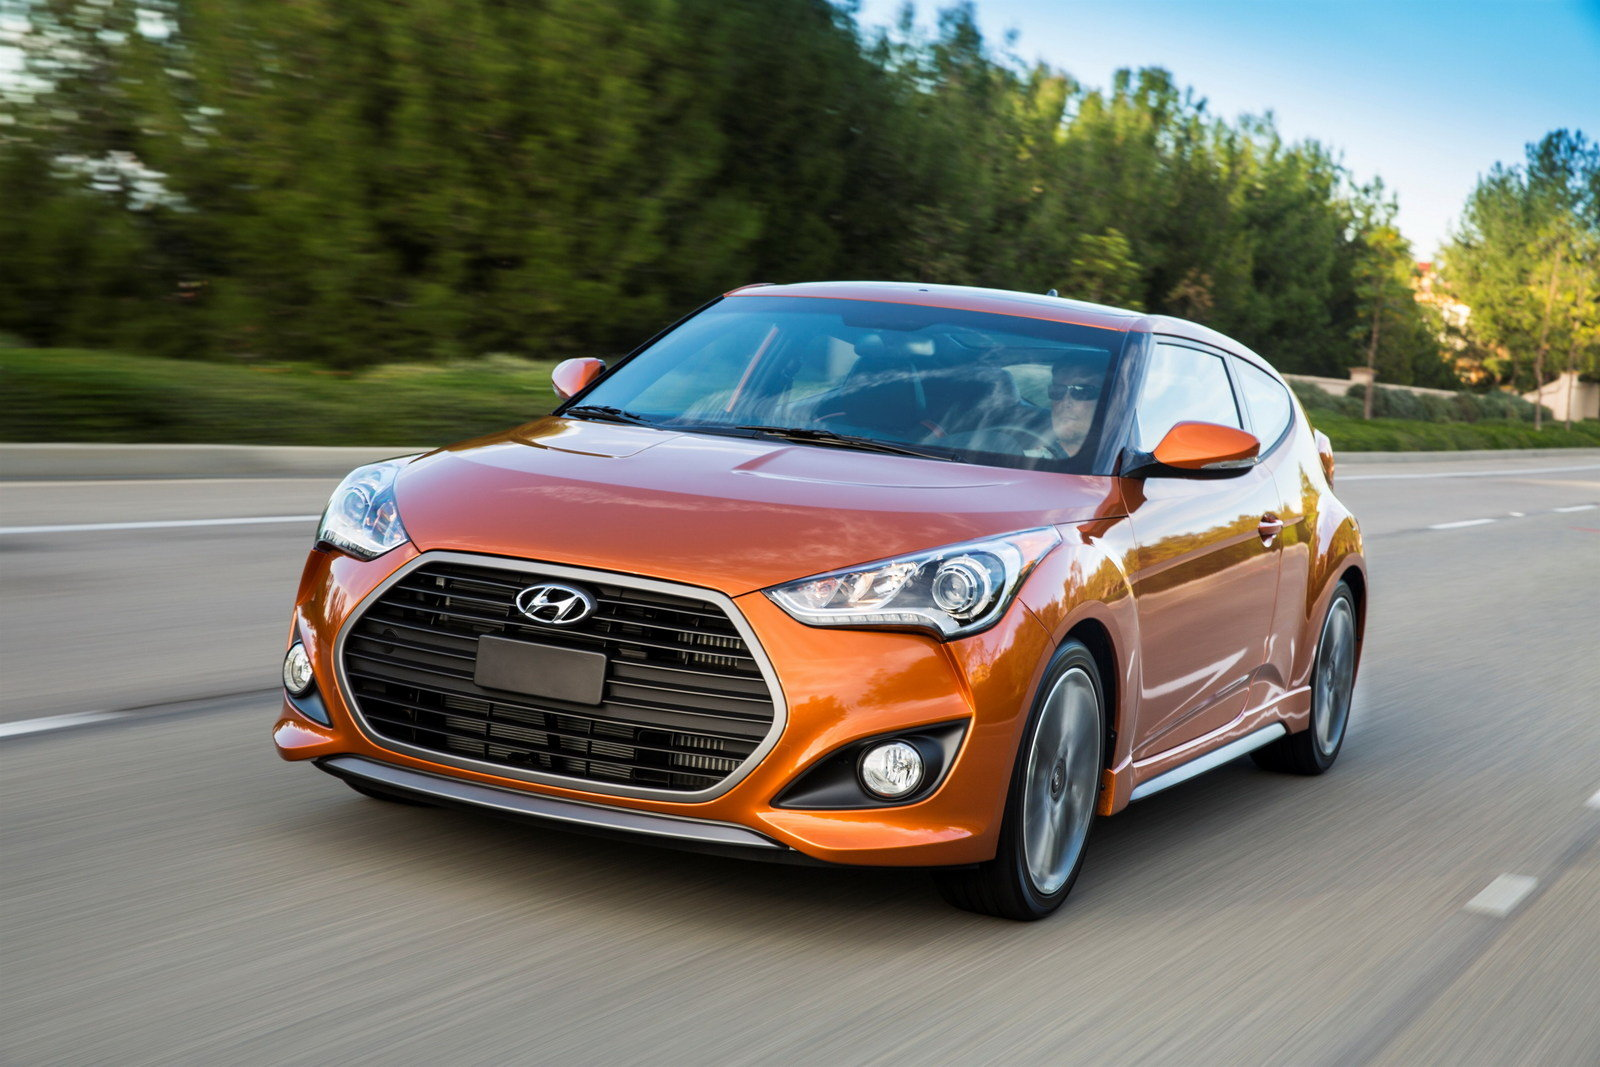 2016 hyundai veloster turbo picture 617104 car review top speed. Black Bedroom Furniture Sets. Home Design Ideas